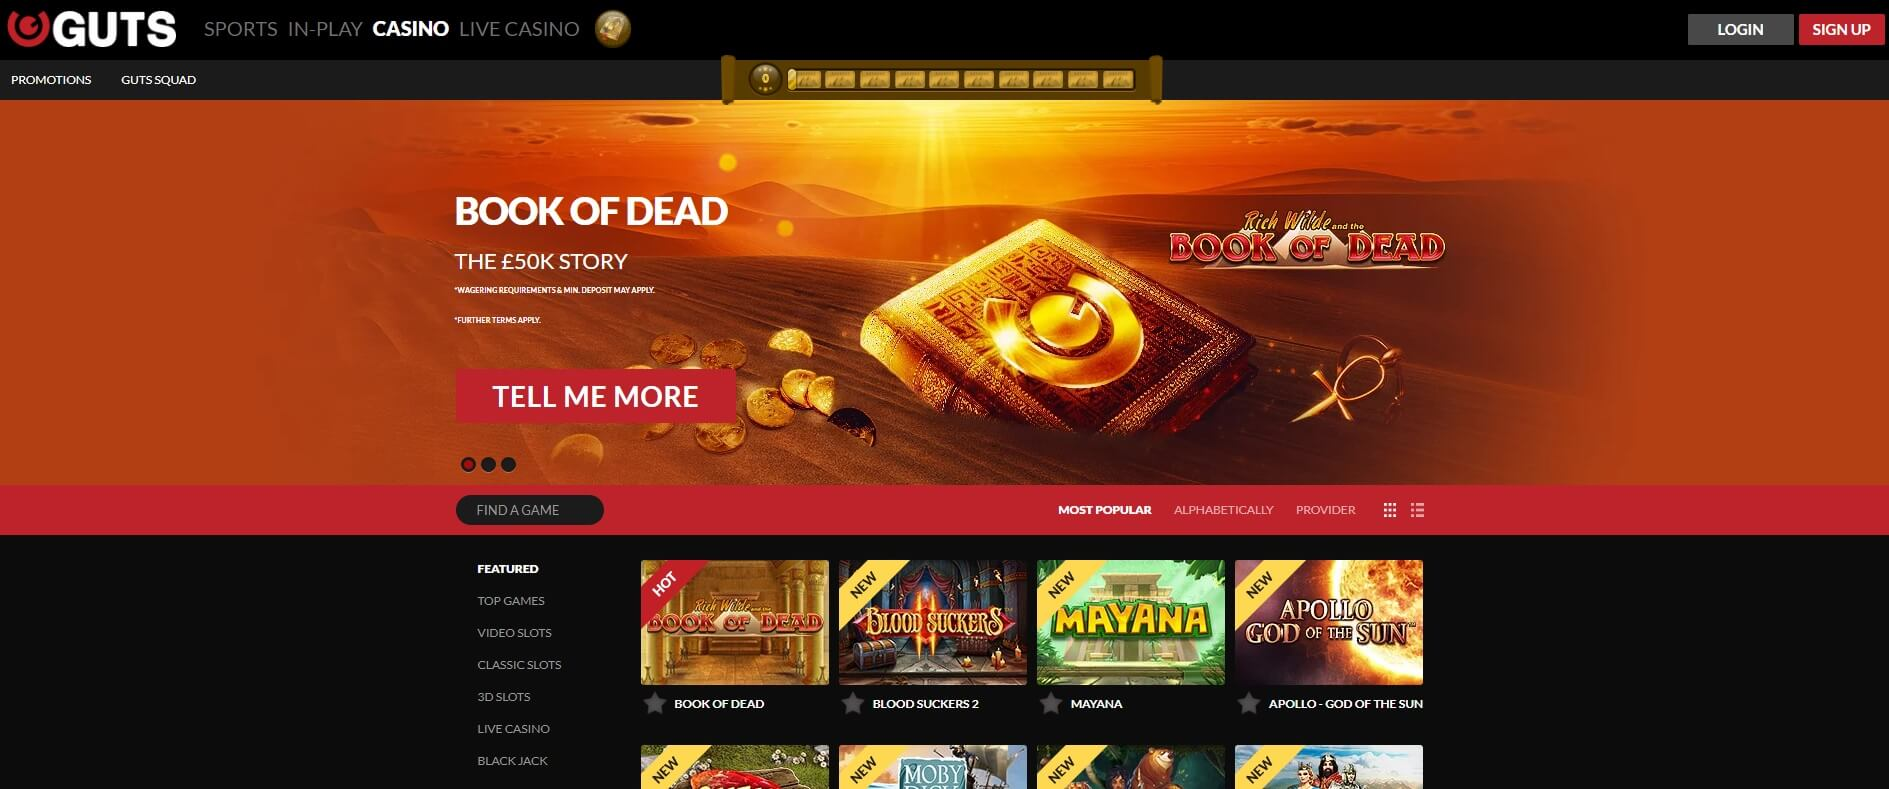 guts casino games and slots